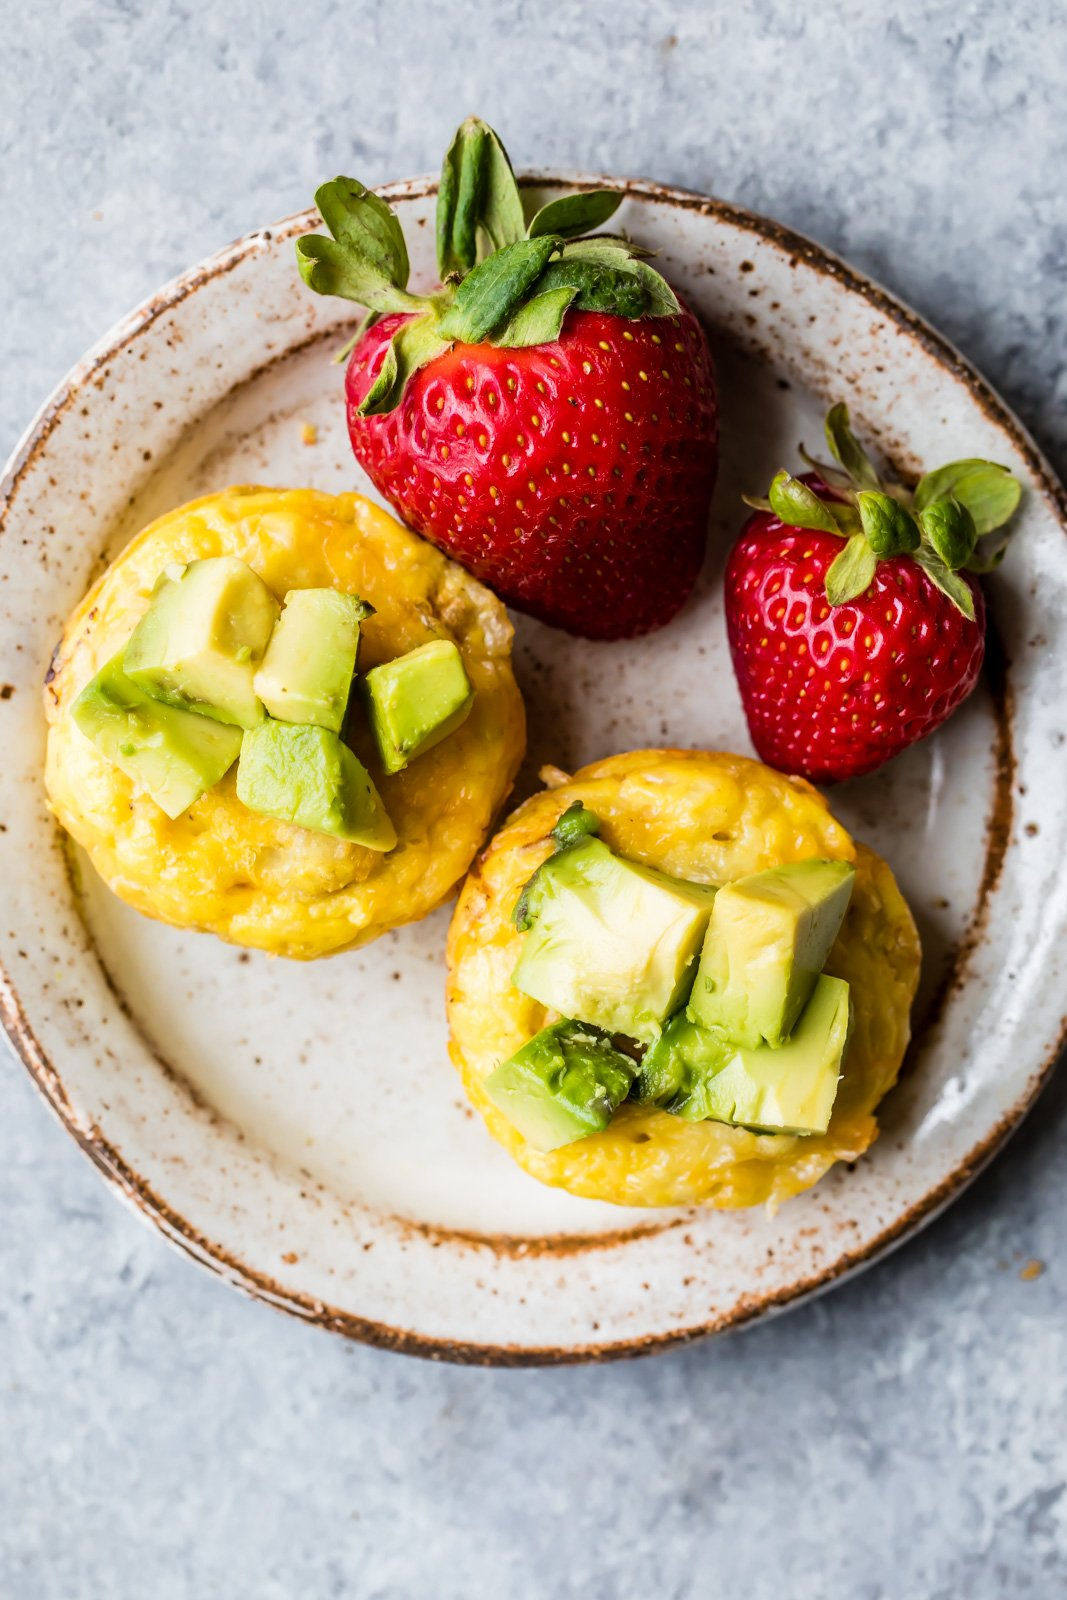 Egg muffins topped with avocado on a plate with strawberries